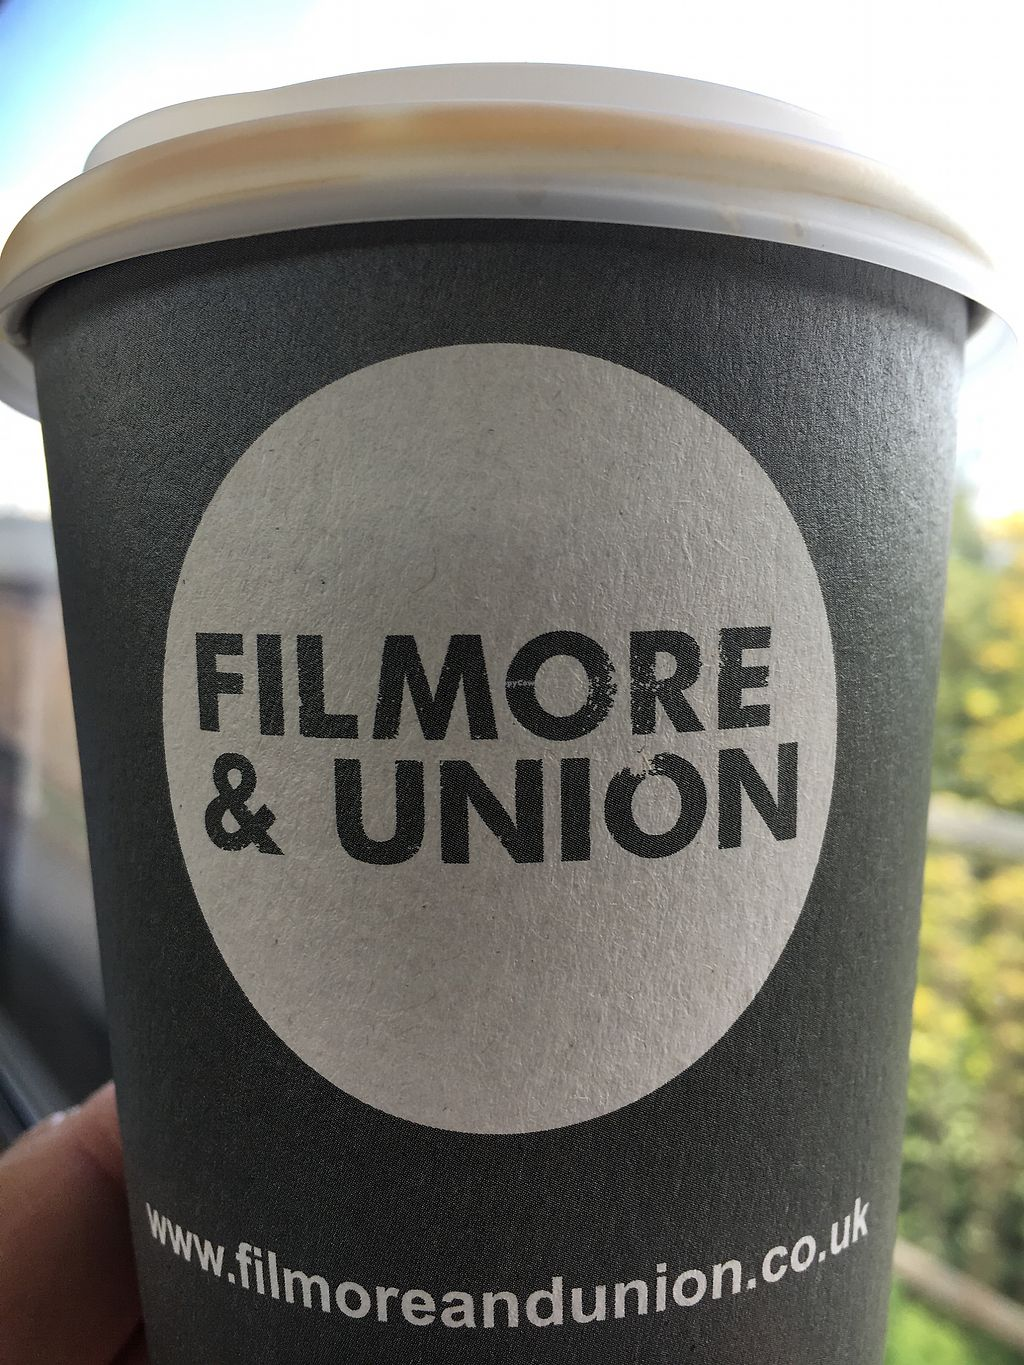 "Photo of Filmore and Union - Central Station  by <a href=""/members/profile/hack_man"">hack_man</a> <br/>coffee on the go  <br/> August 18, 2017  - <a href='/contact/abuse/image/66060/293987'>Report</a>"